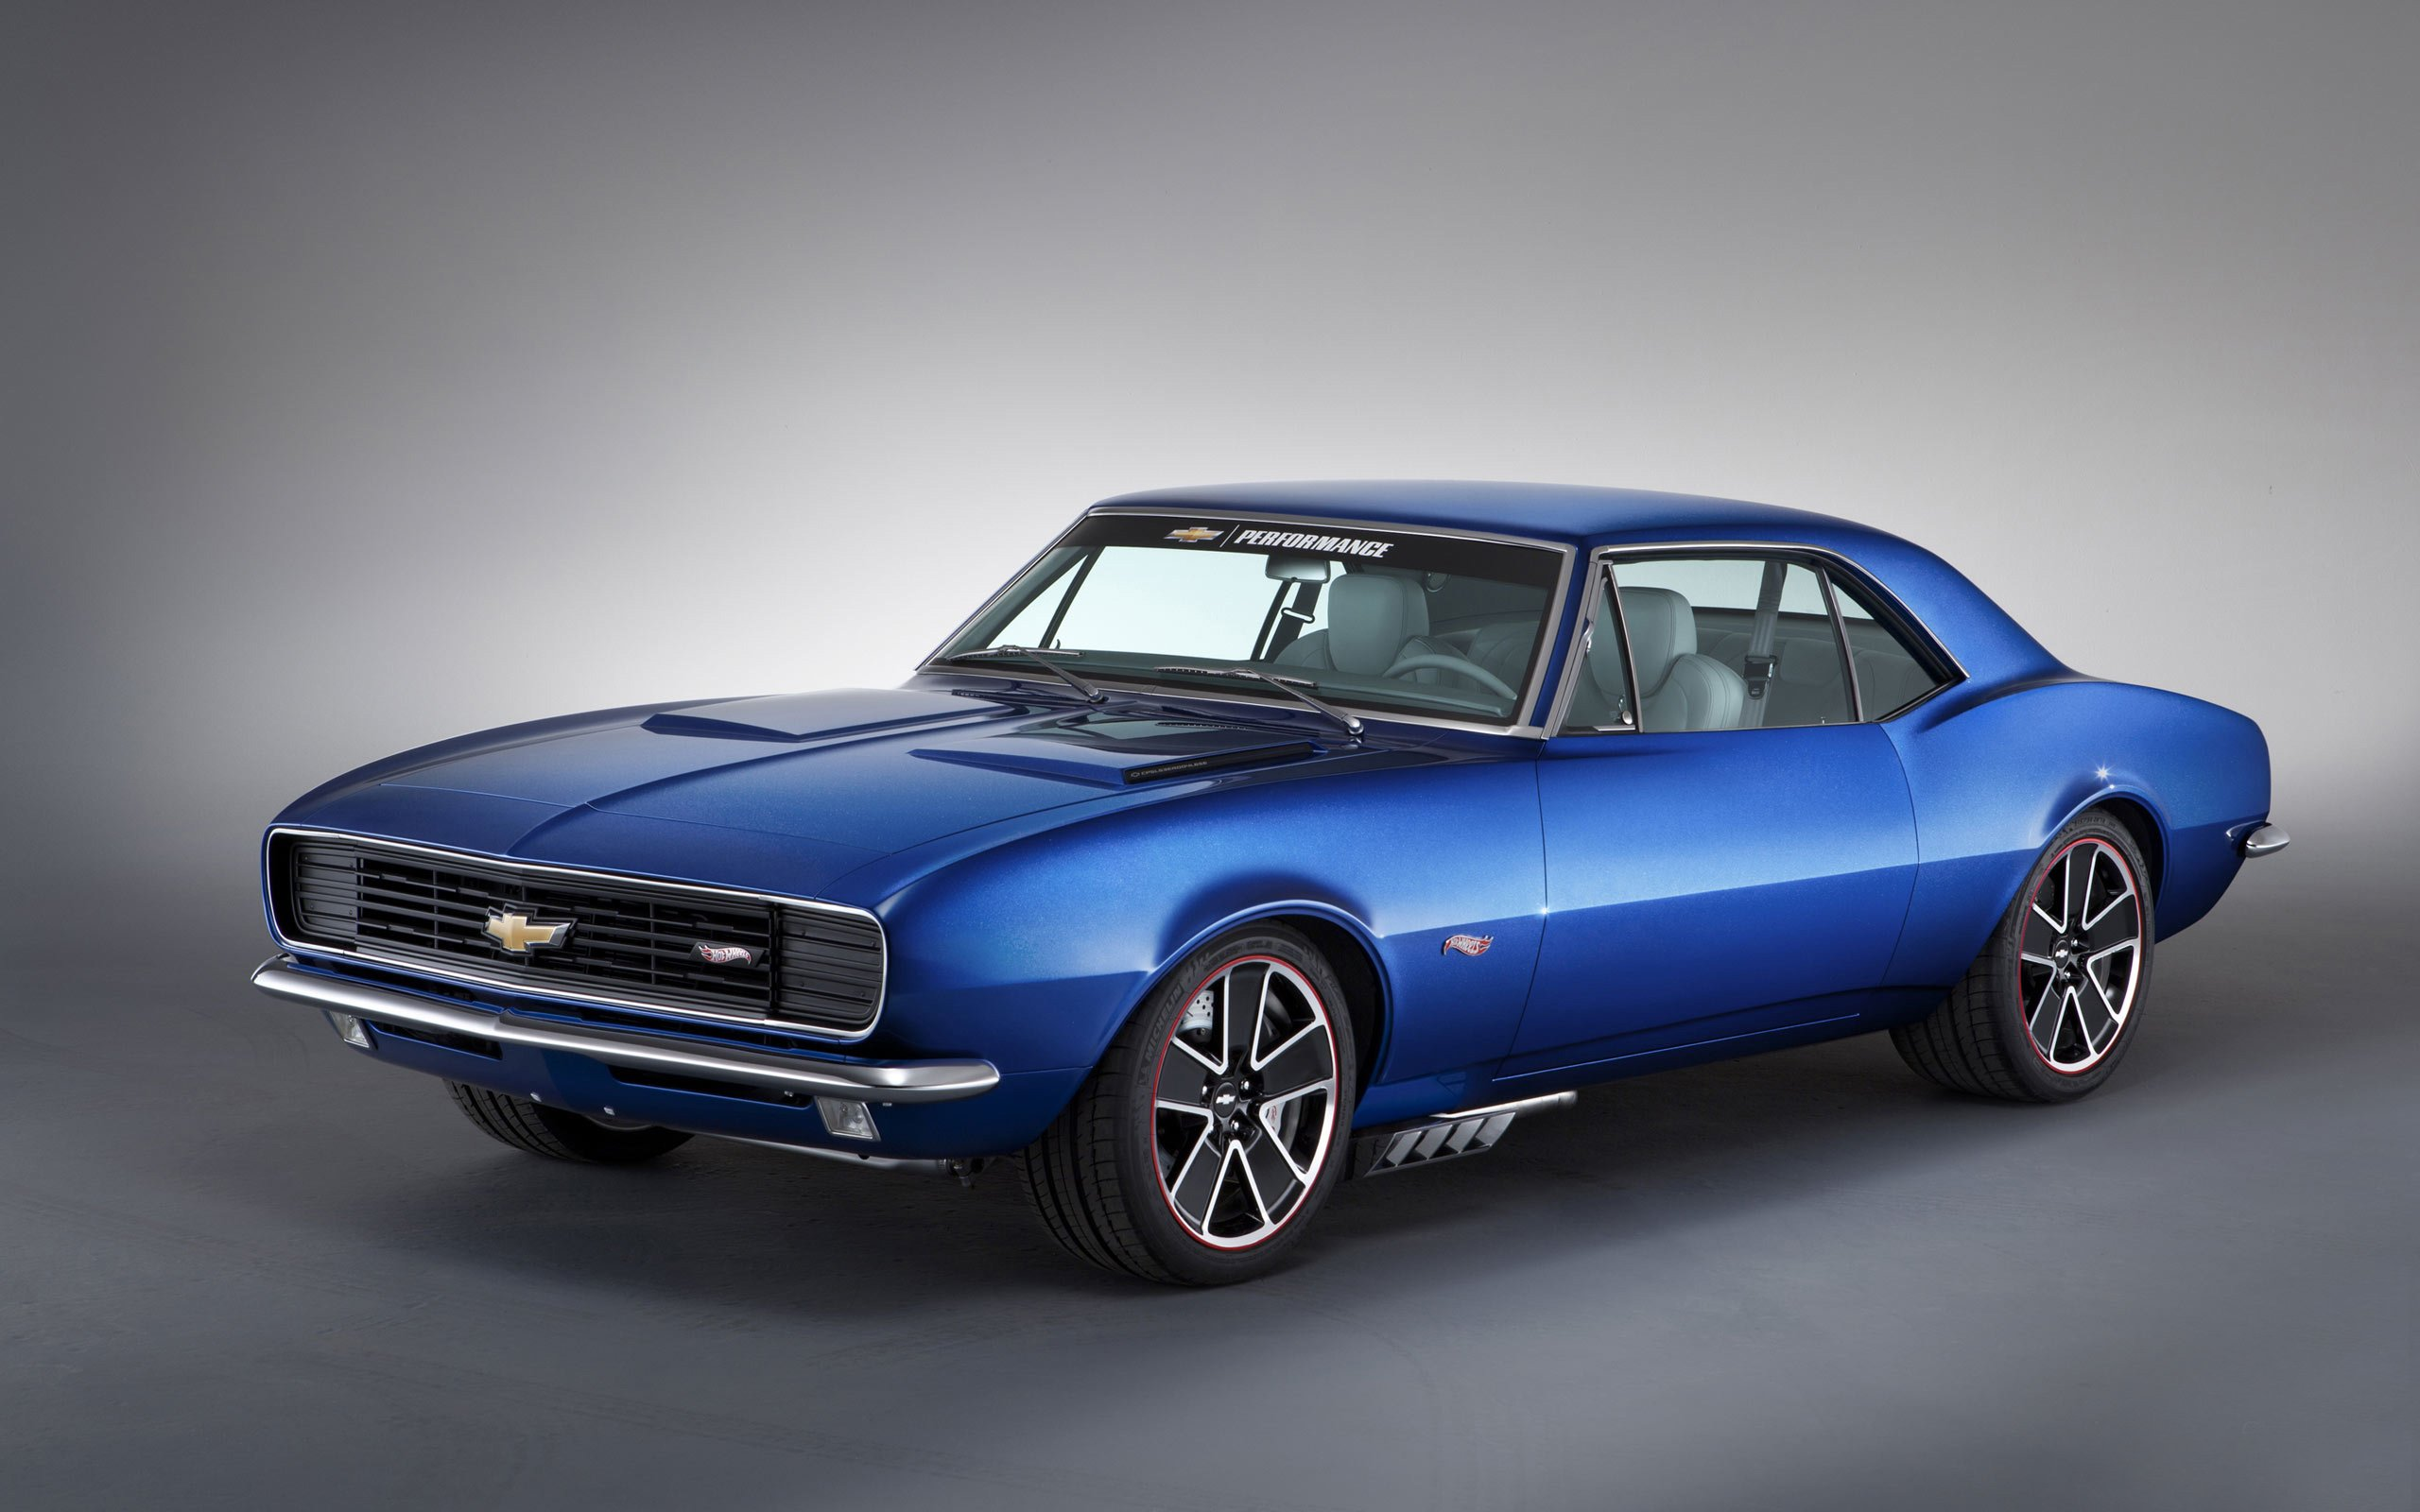 1967 Chevrolet Camaro Hot Wheels Wallpaper HD Car Wallpapers 2560x1600